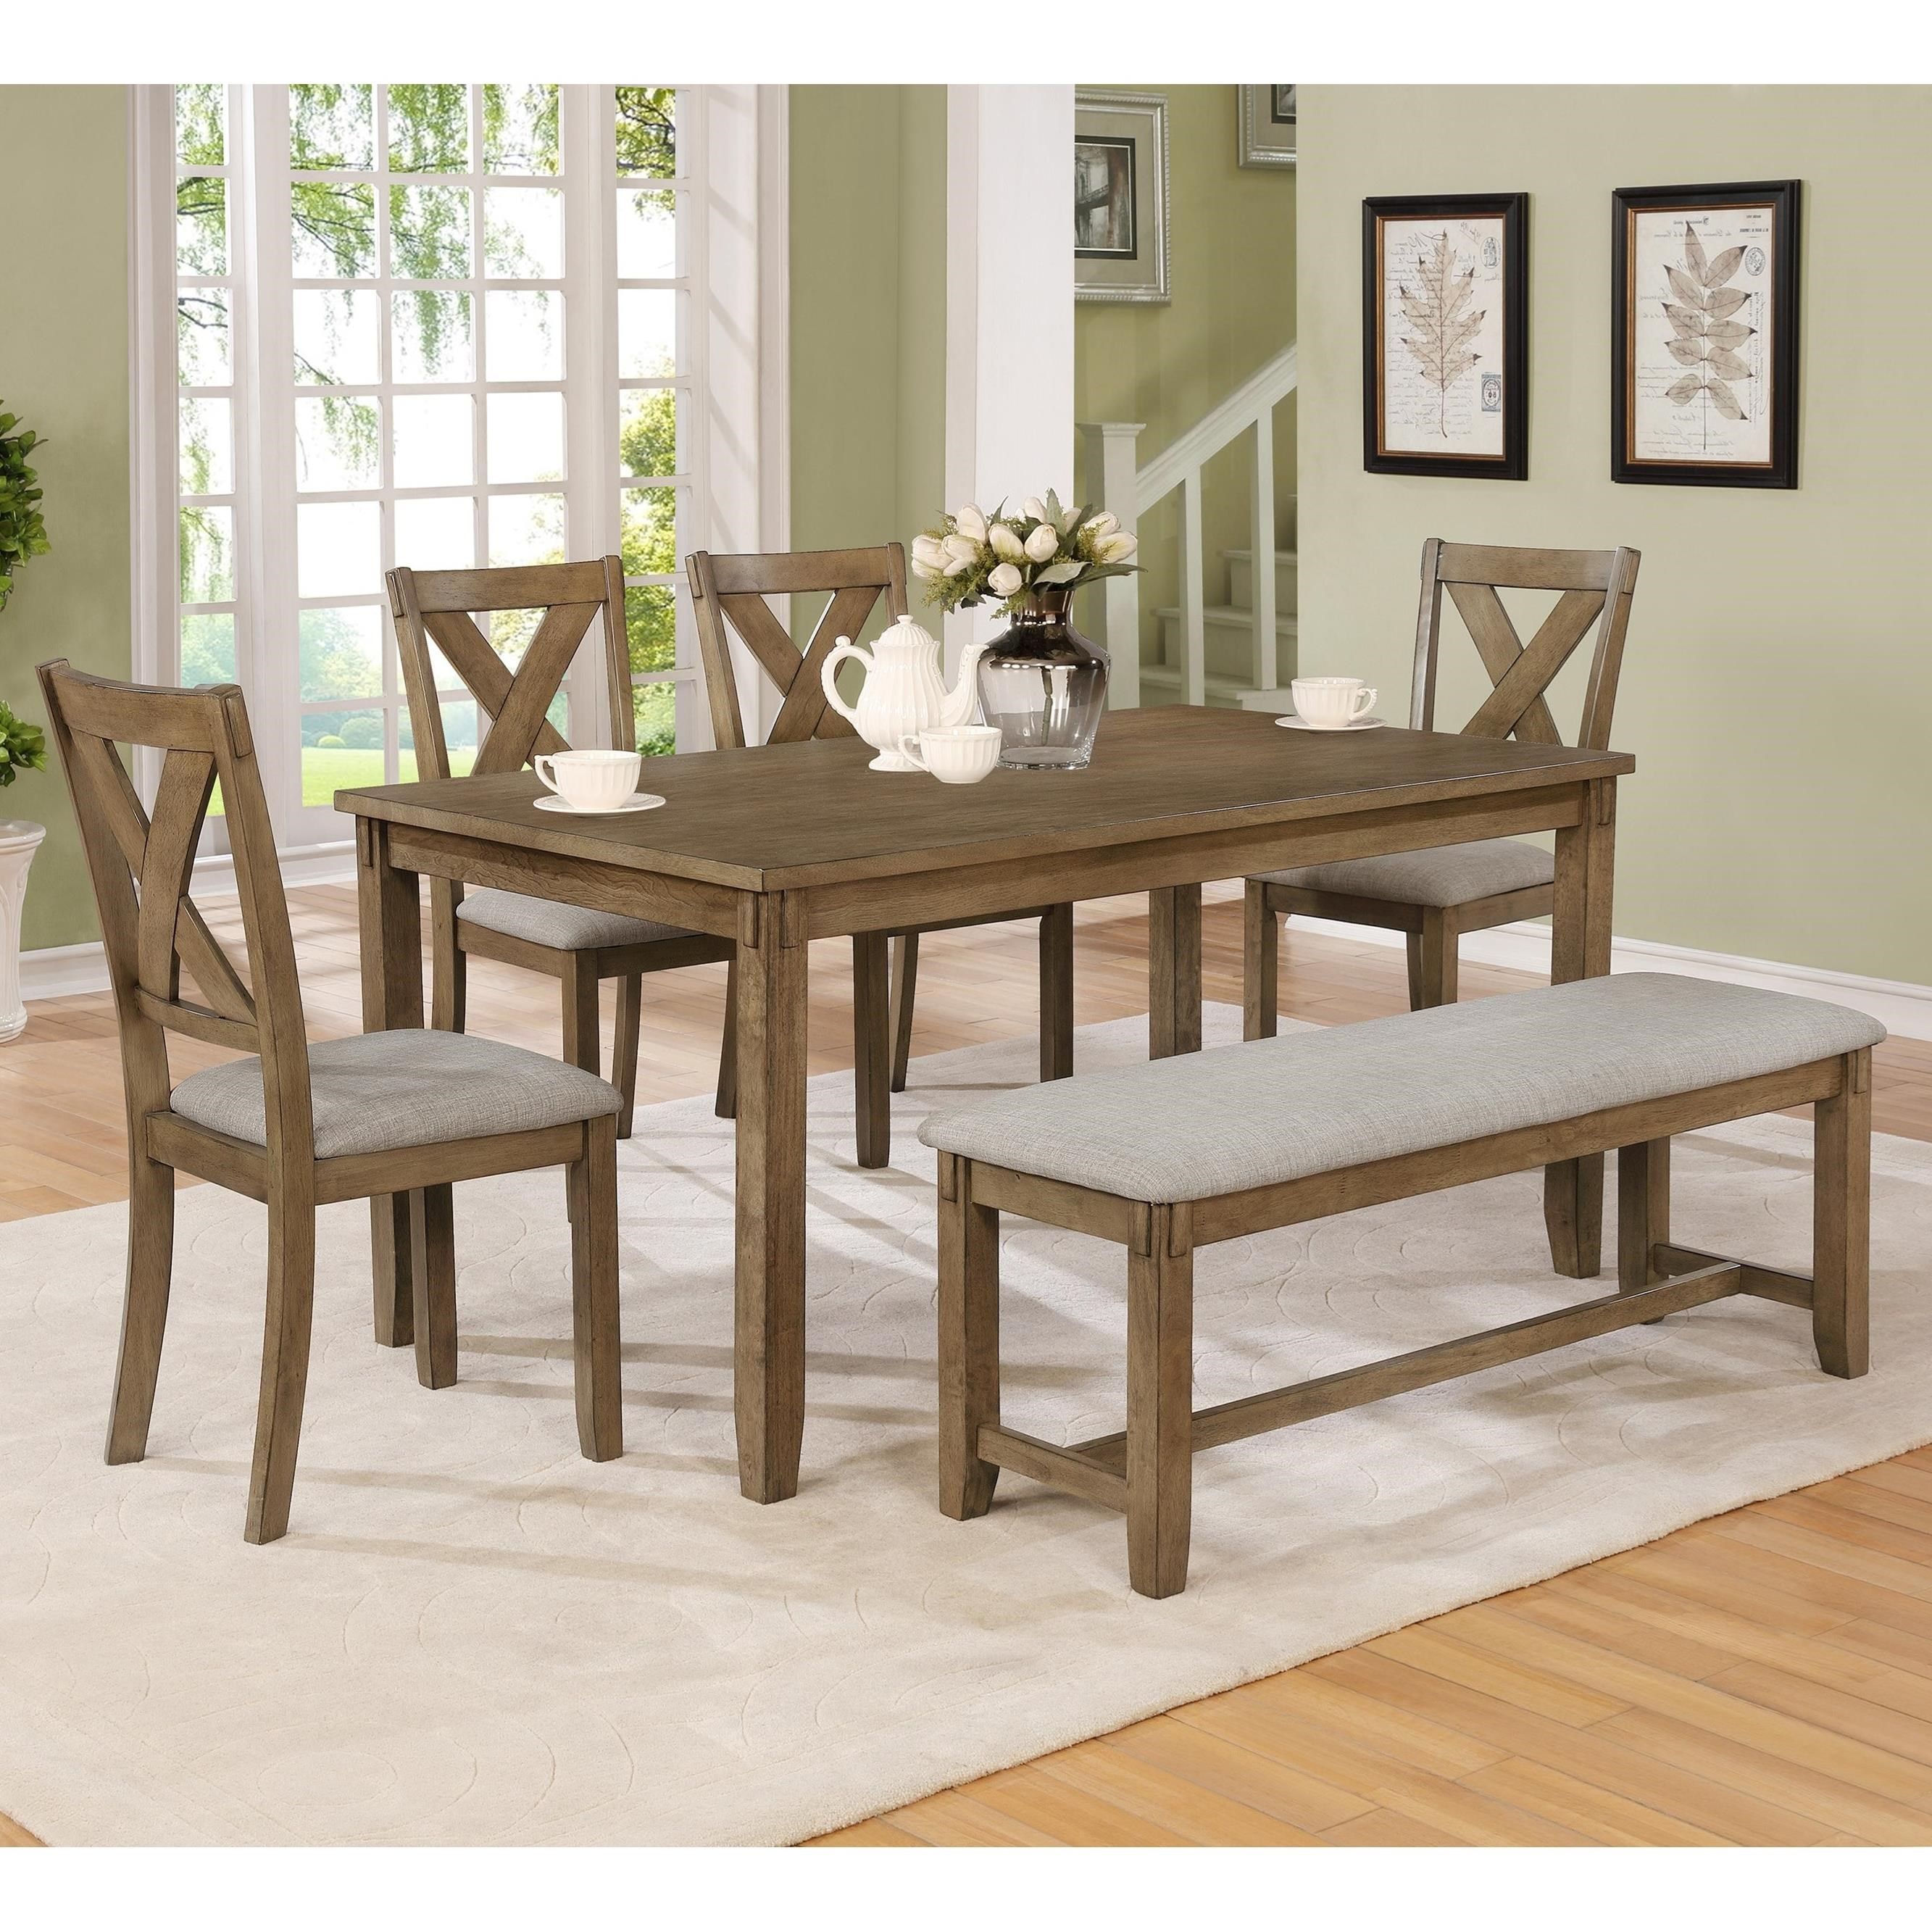 6 Piece Table and Chairs Set